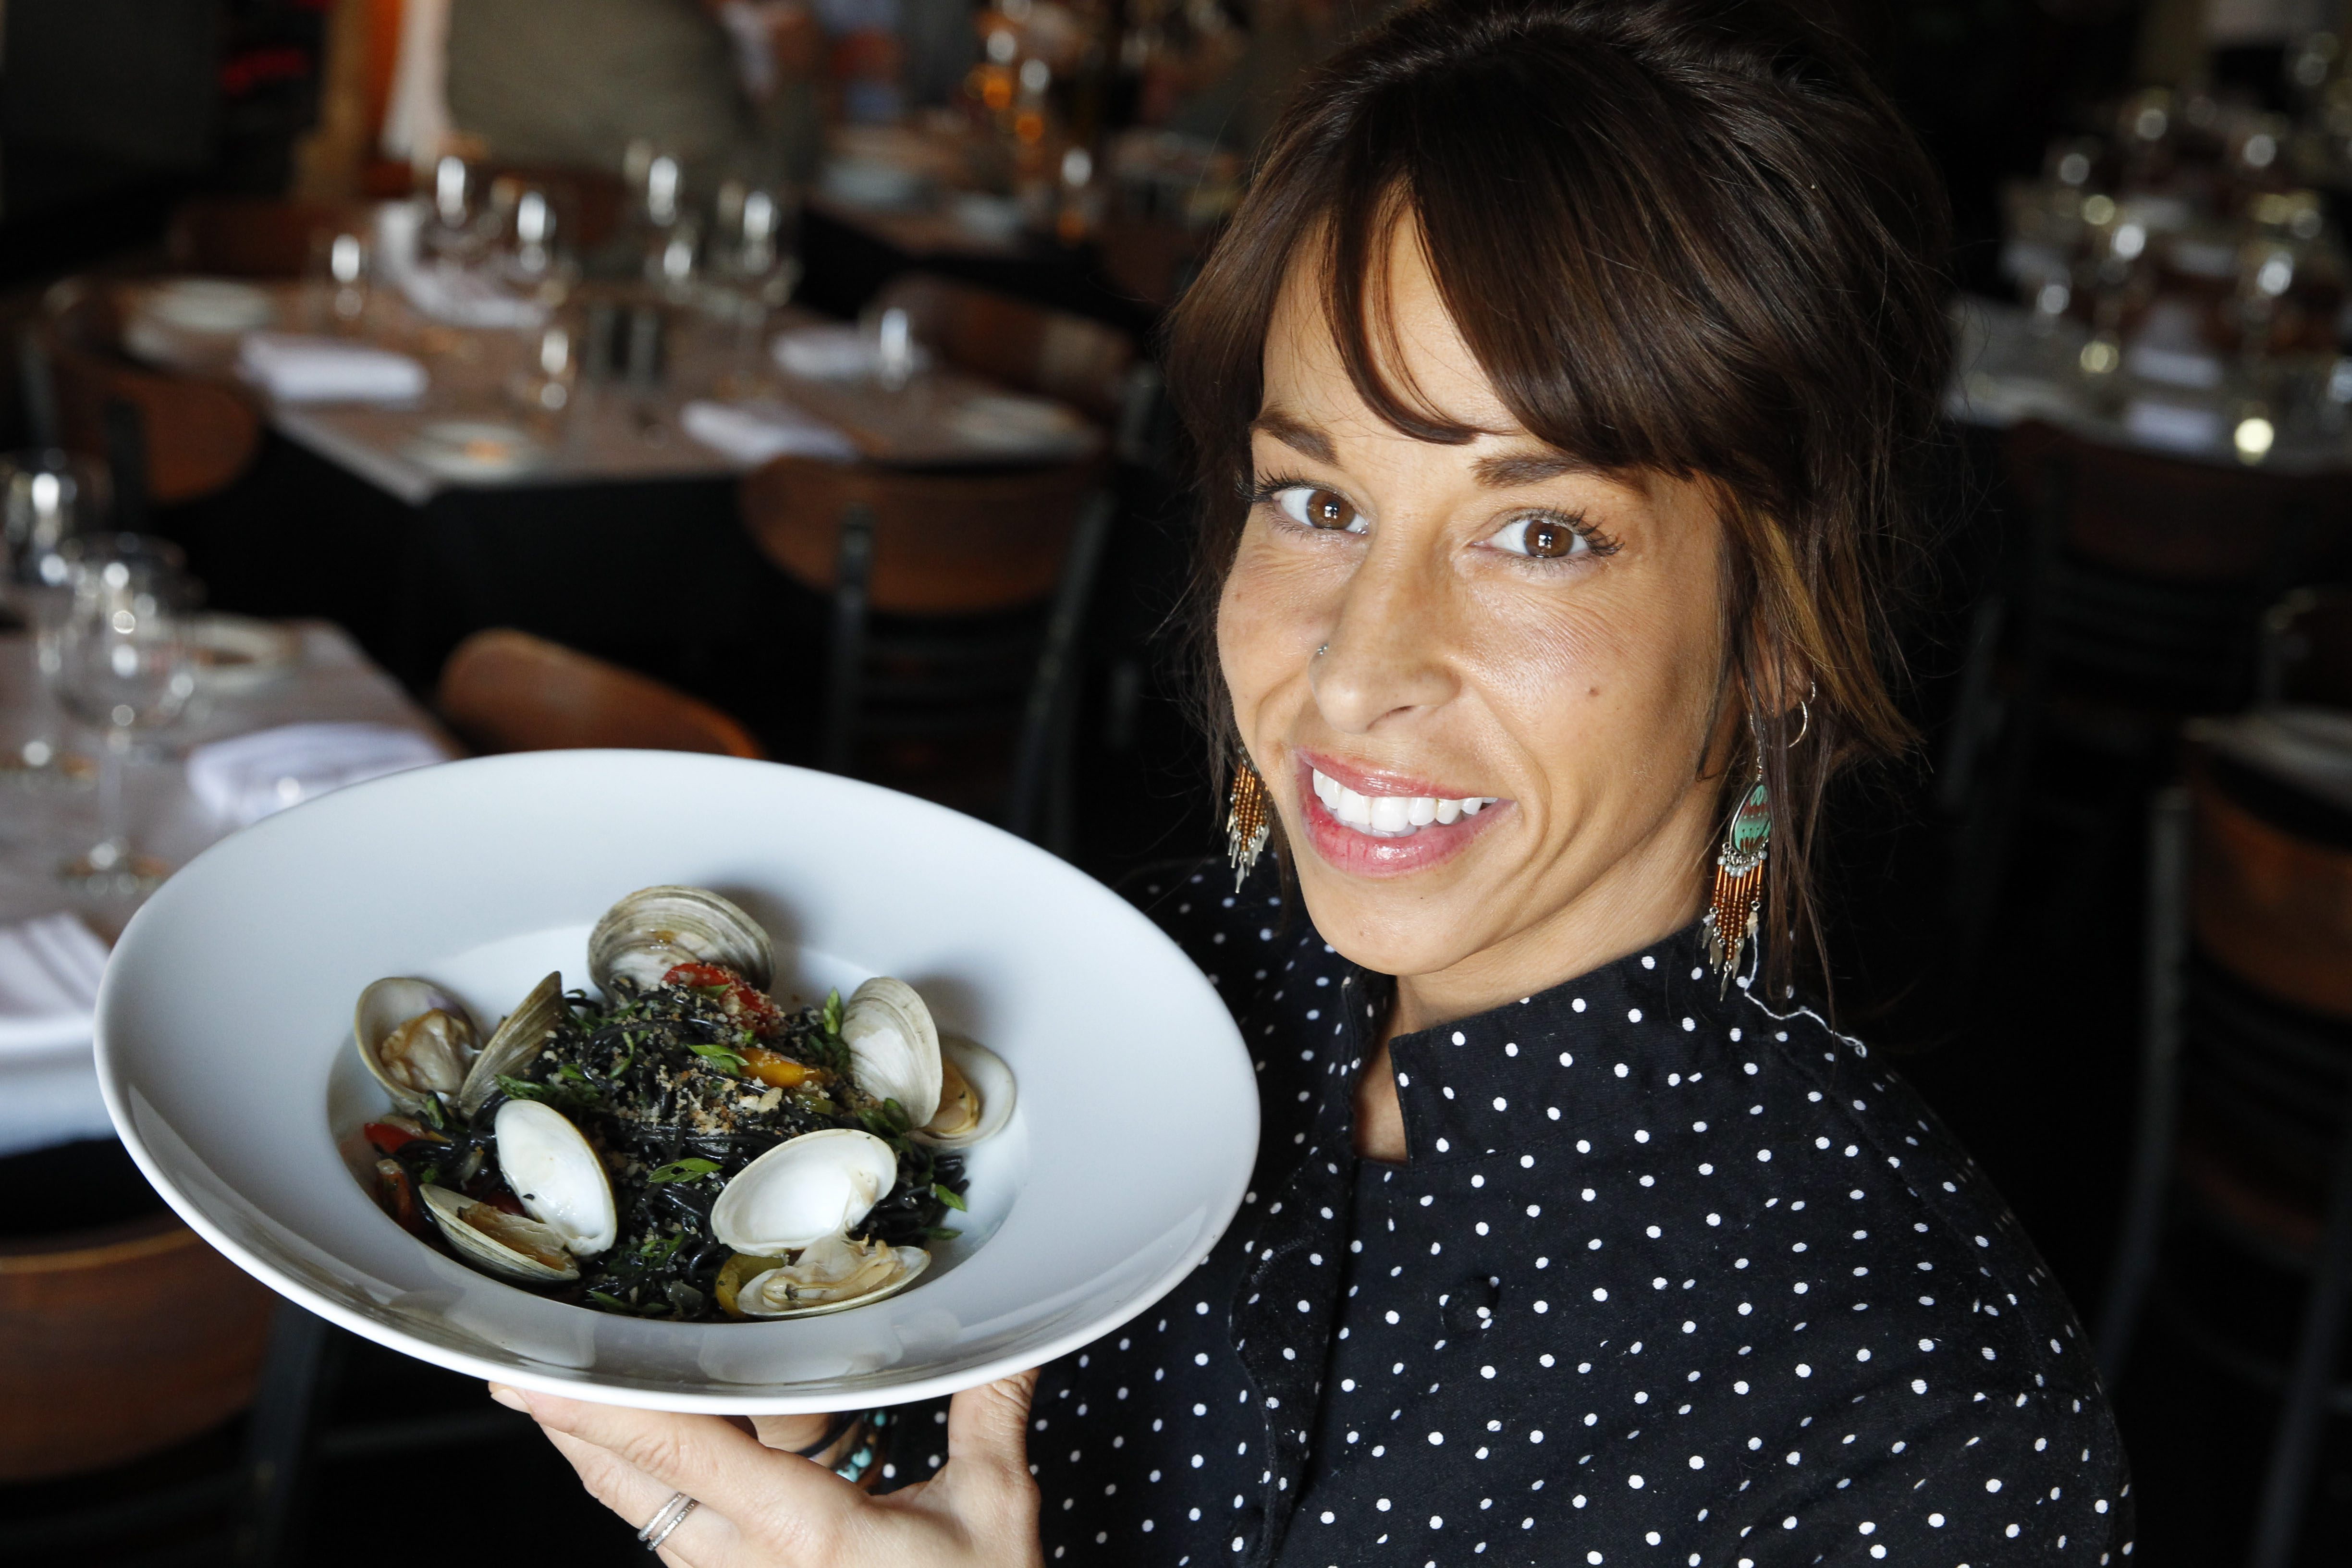 Chef Jennifer Marabella of Siena will compete in the March of Dimes fundraiser. (Sharon Cantillon/Buffalo News)